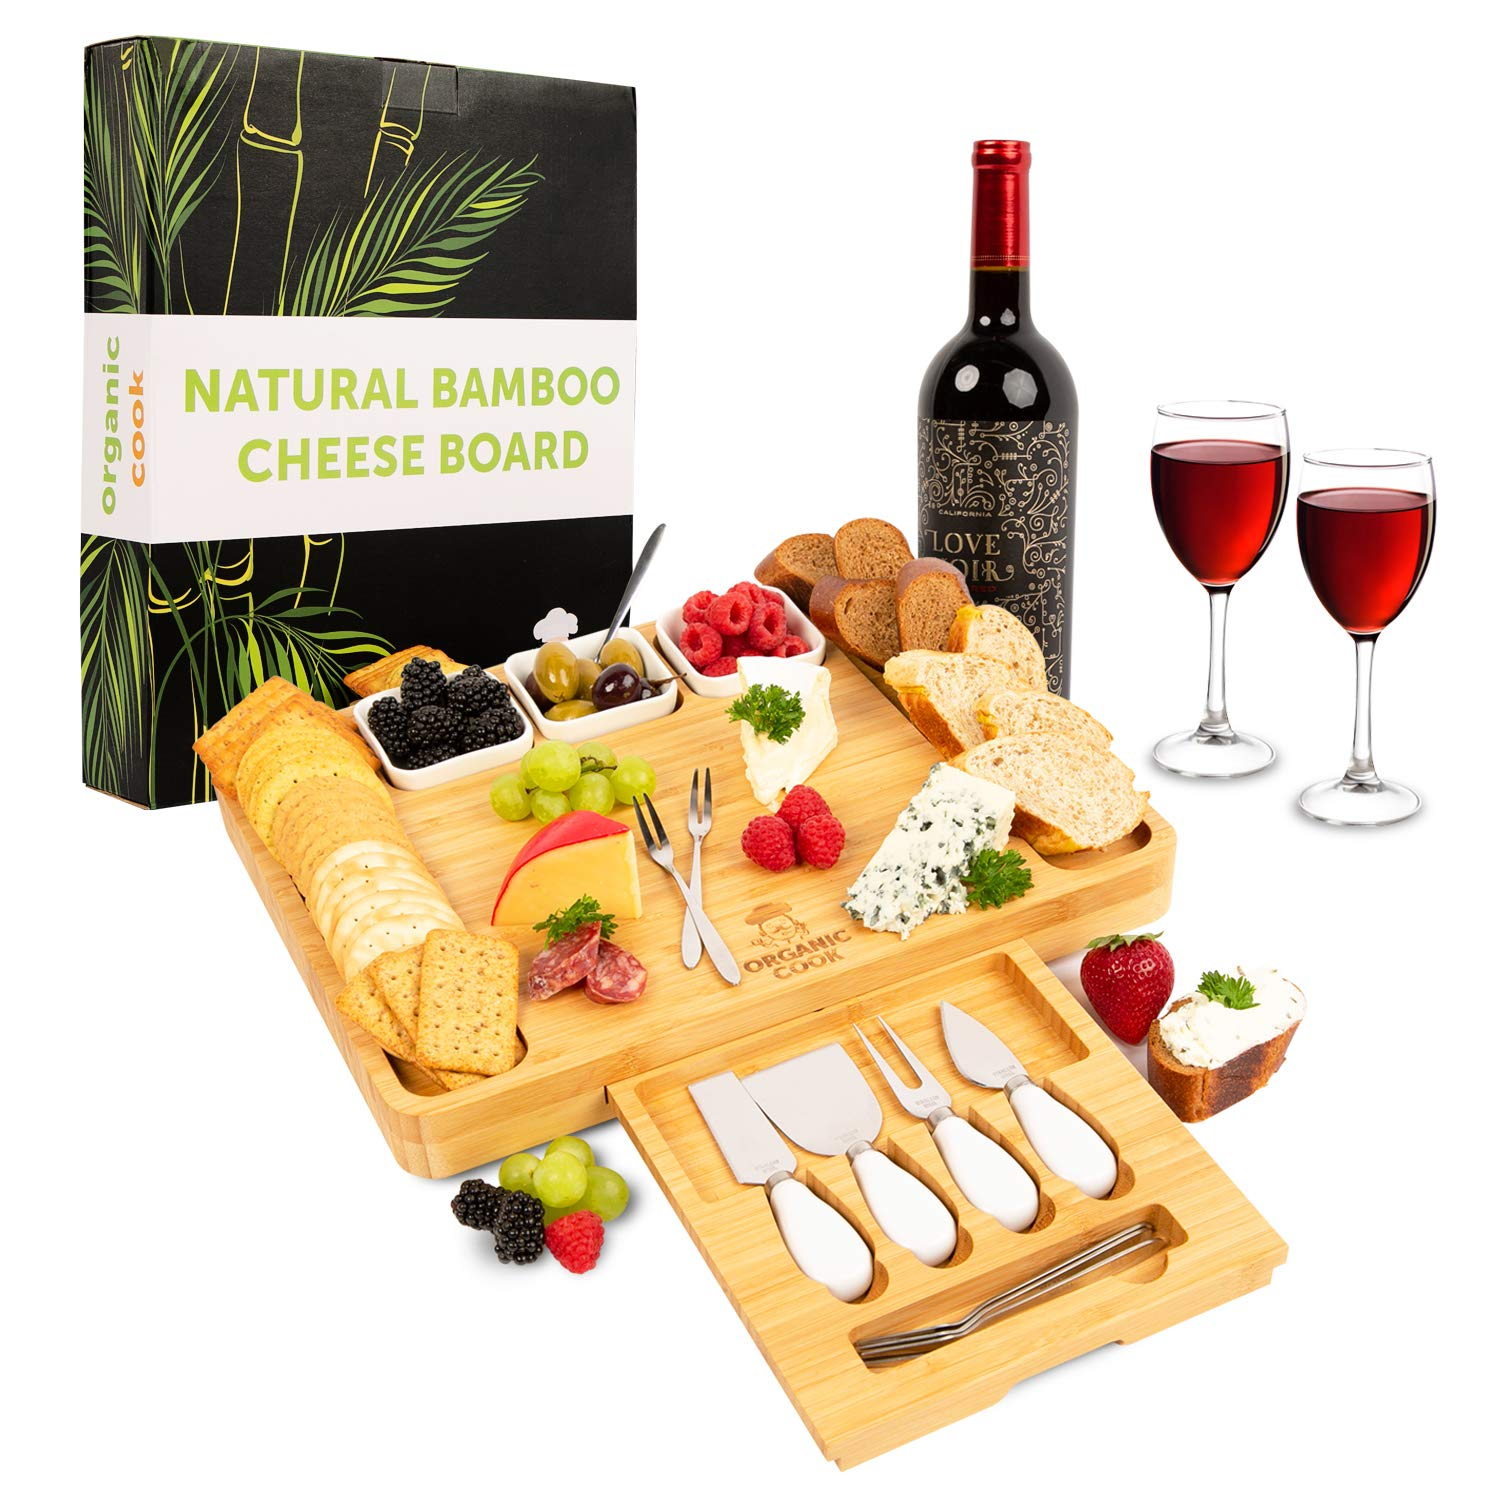 Cheese Board, Cheese Tray, Charcuterie Board: includes 4 Cheese Knives, 3 Ceramic Bowls, BONUS 6 Stainless Steel Forks, ideal Wedding Gifts, Wedding Gifts for the Couple by Organic Cook